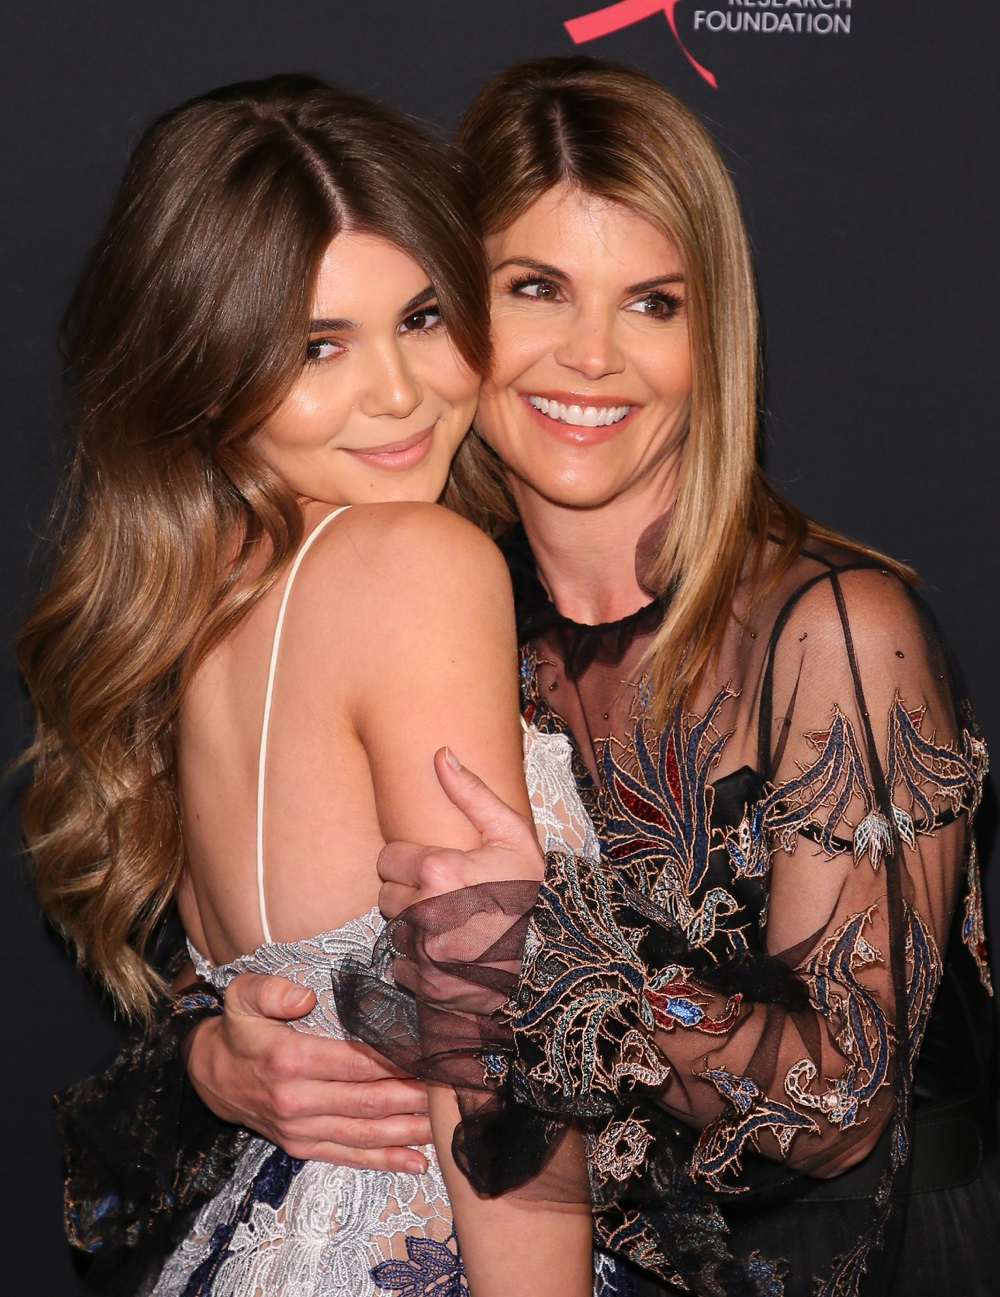 Olivia Jade (L) and Lori Loughlin ENTERTAINMENT-US-FUNDRAISER-RESEARCH-HEALTH-WOMEN